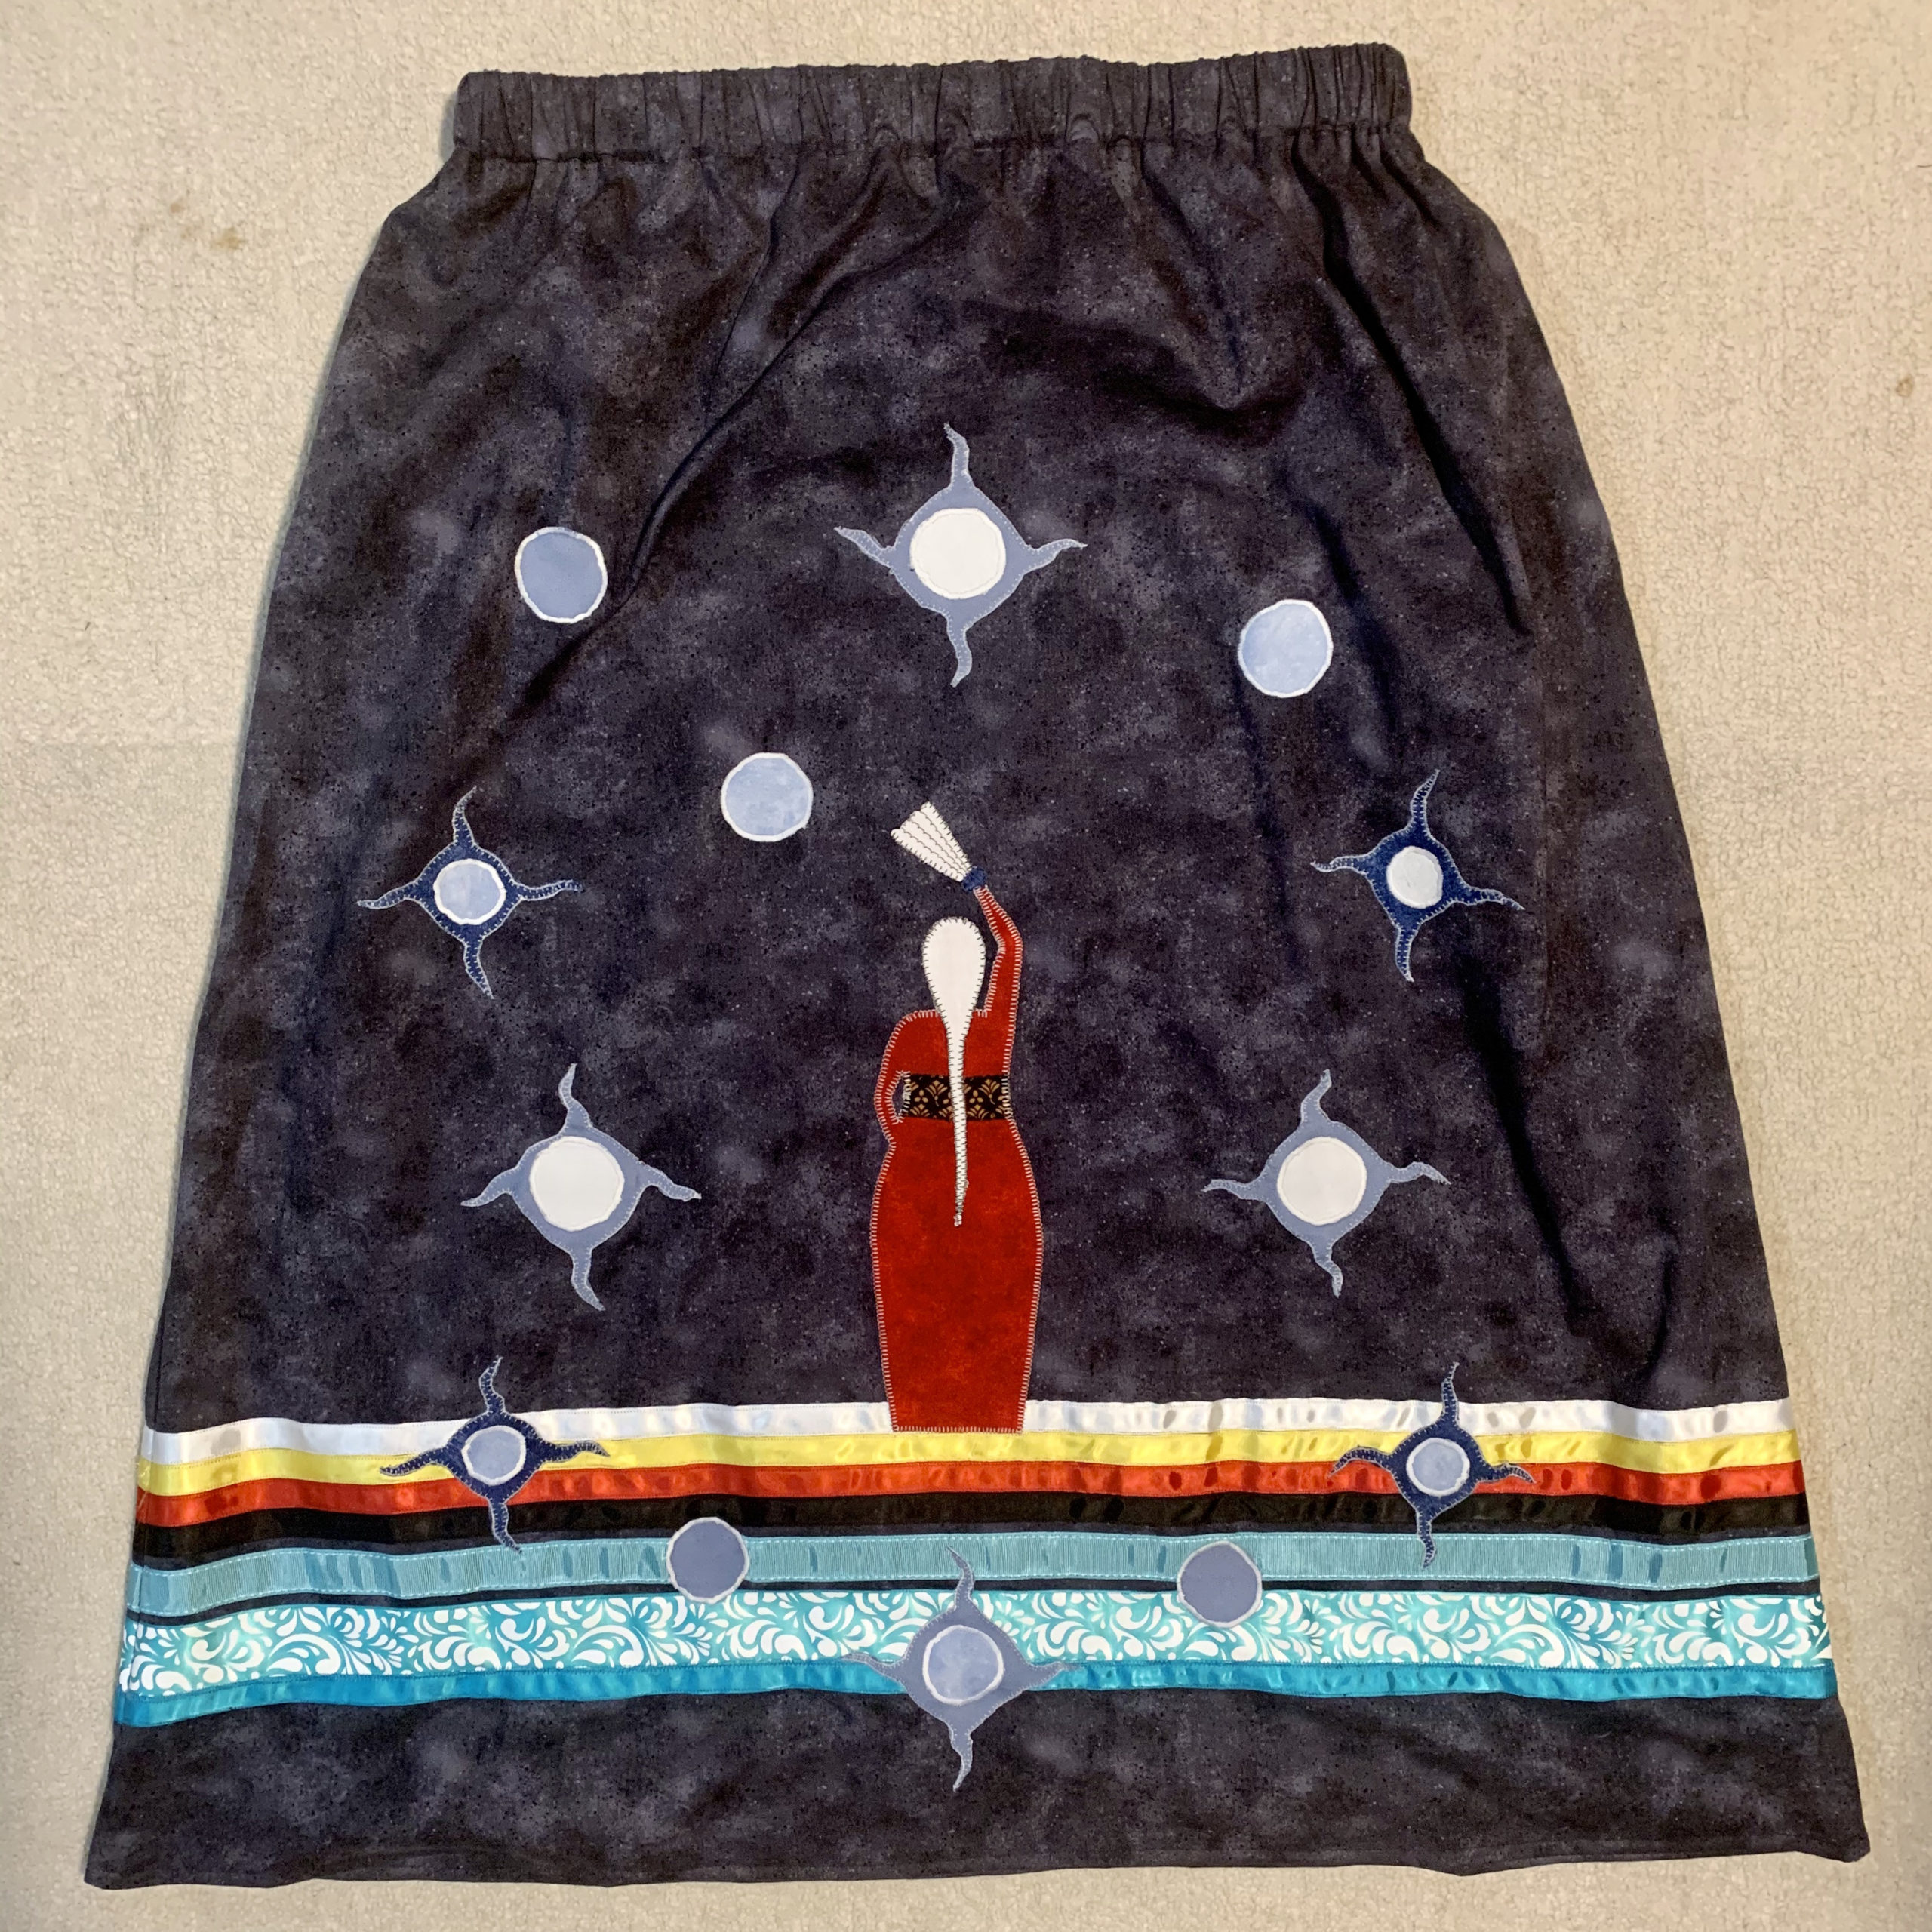 Bernice Collins-Shigwadaja, apparel & clothing, bags & wallets, beadwork, beader, birch bark, crafts, craft maker, quilling, quillwork, ribbon skirts, Indigenous Artist, First Nations, Indigenous Arts Collective of Canada, Pass The Feather